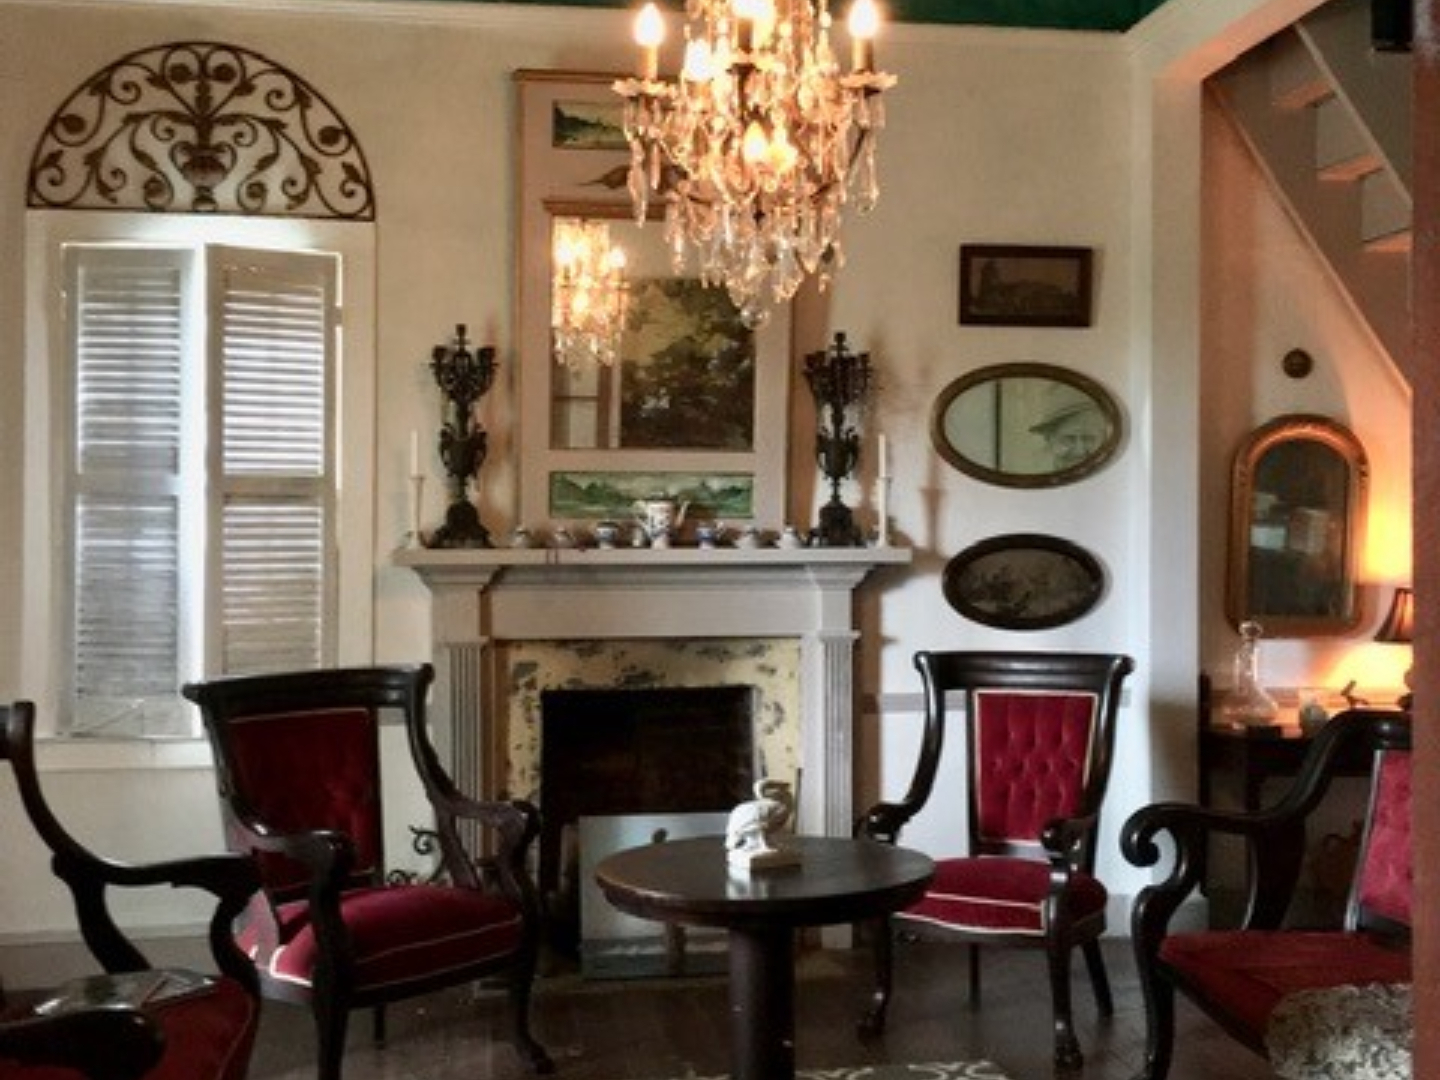 A living room filled with furniture and a fire place at John LaFleur's Louisiana Creole Guesthouse.